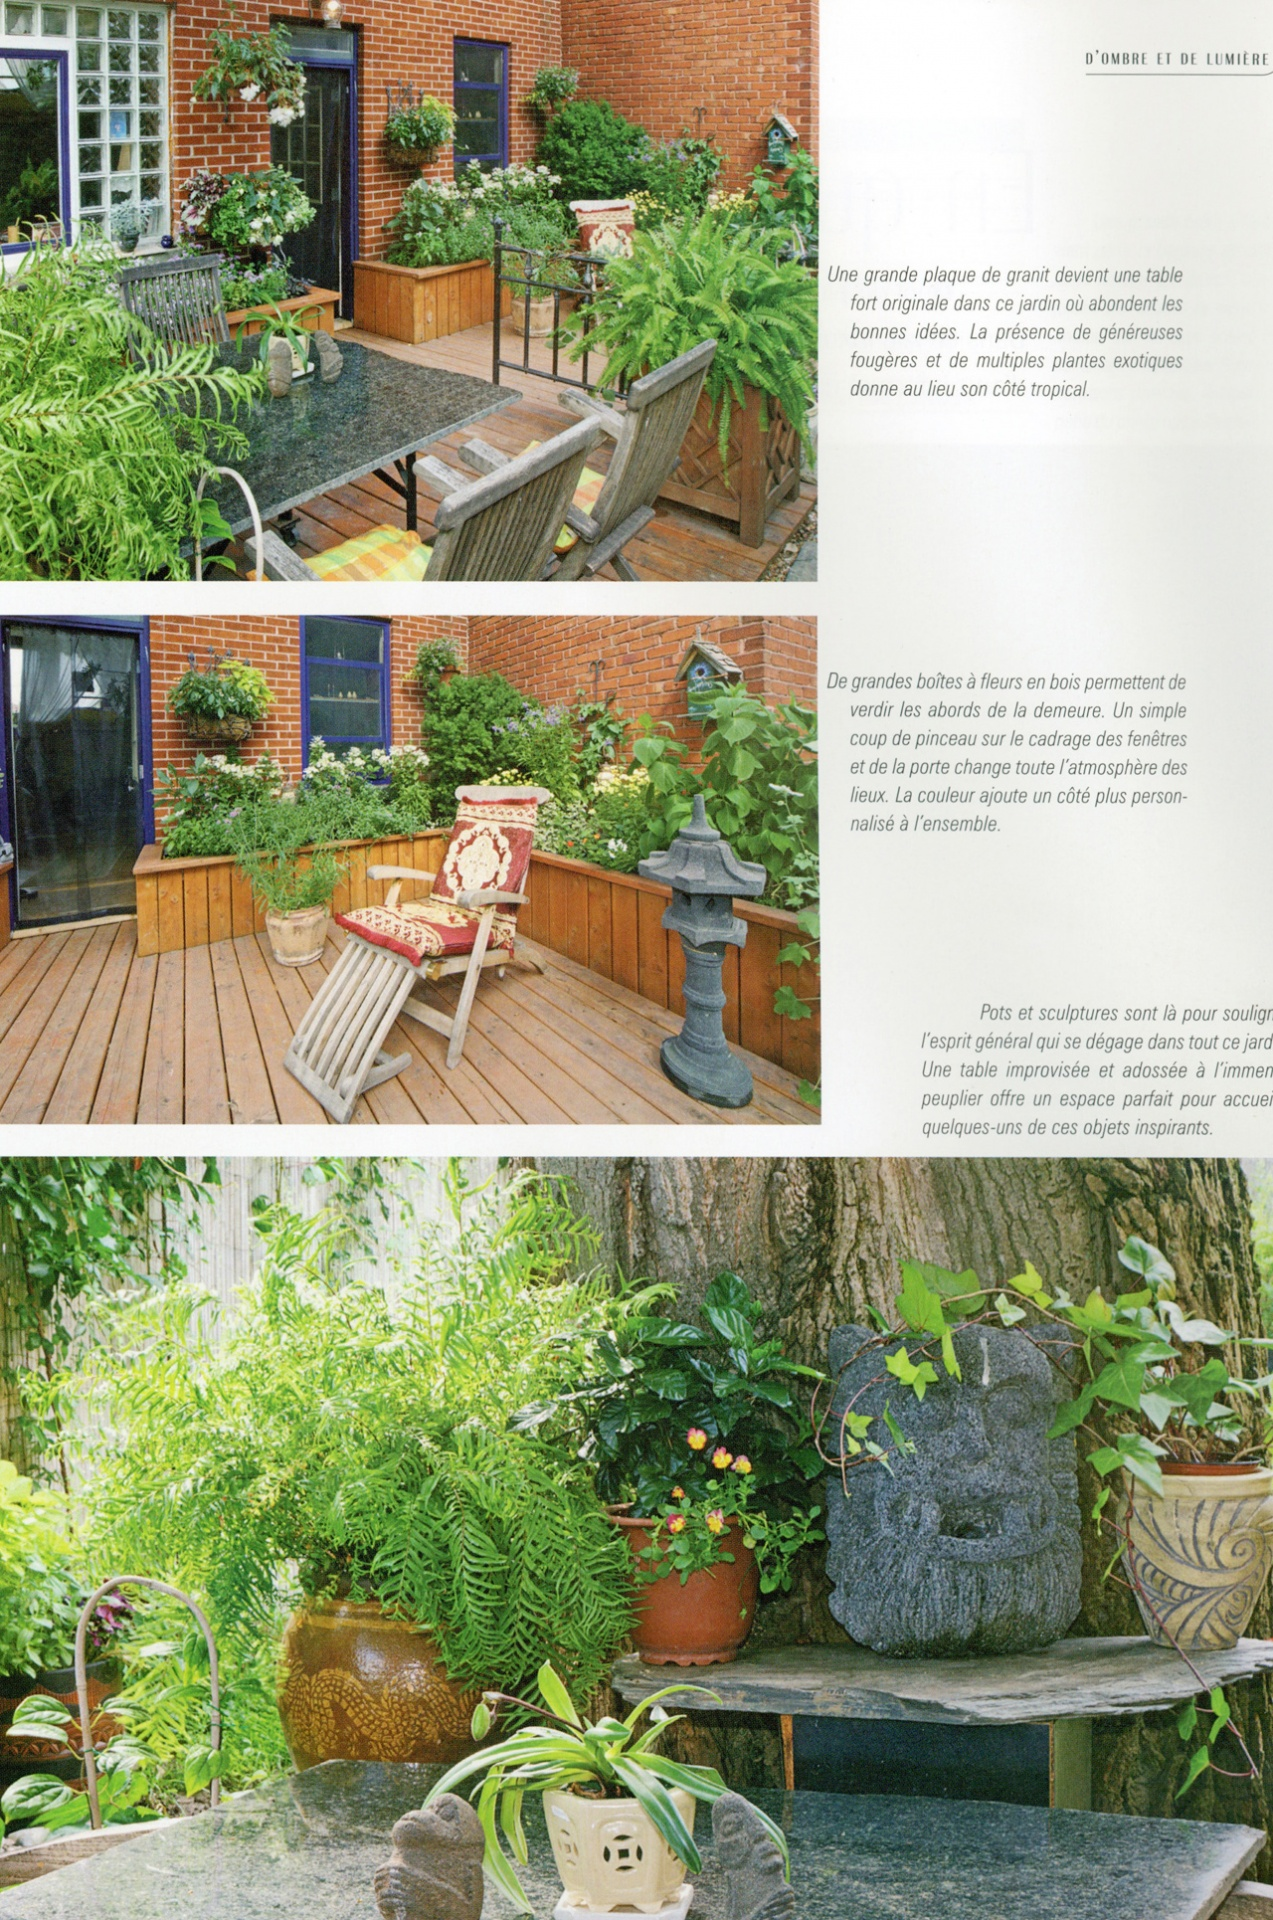 Exotique archives les jardins anim s inc for Jardin anime